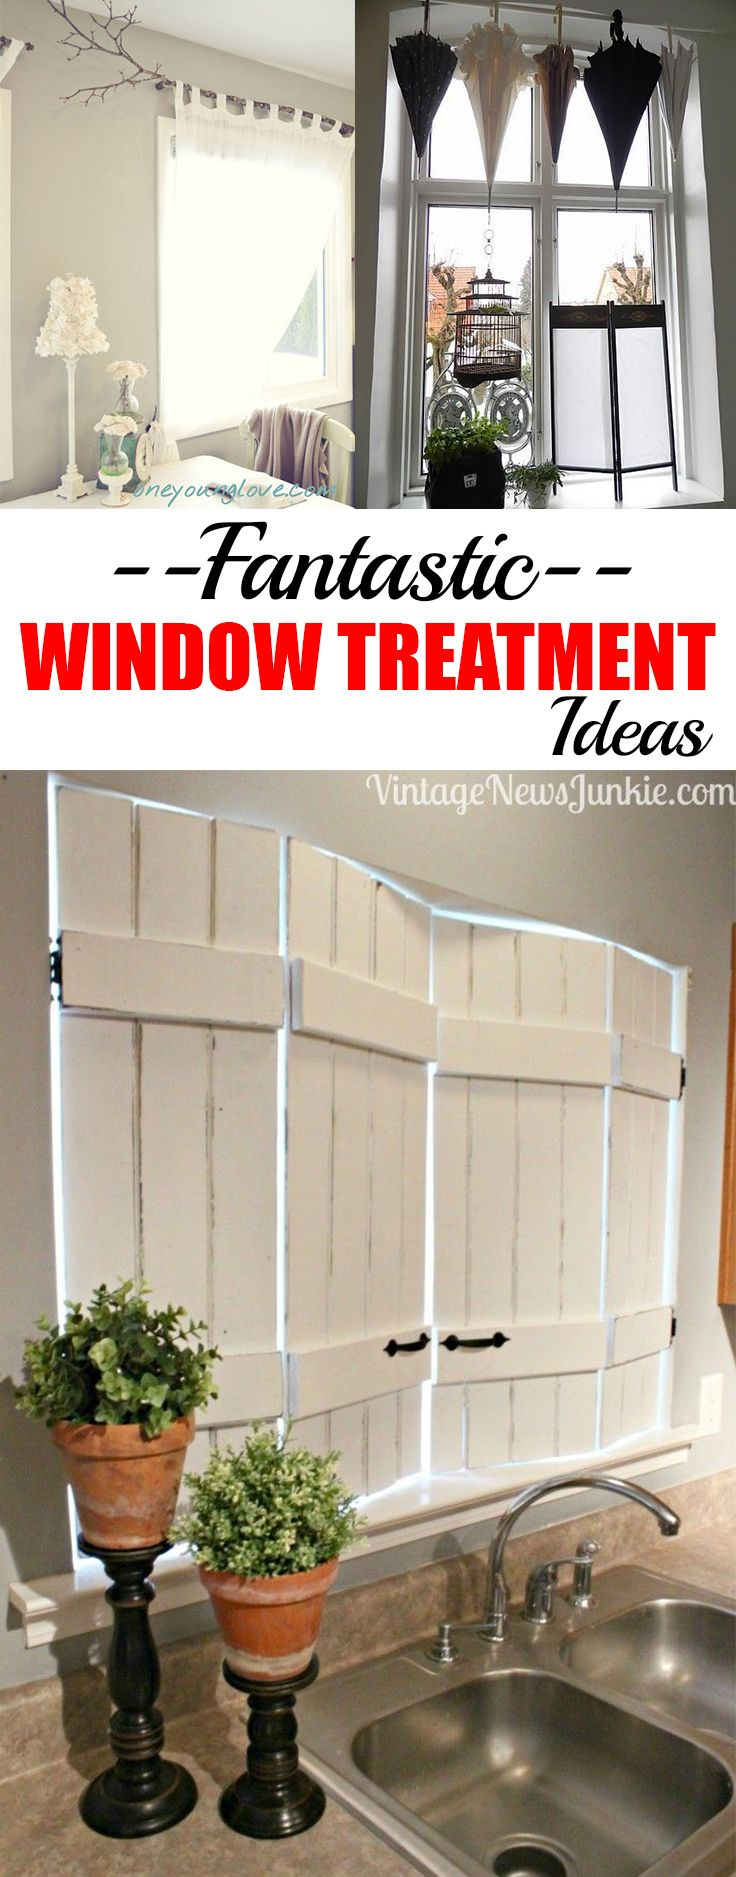 17 best images about homes interior design window for Shutter window treatment ideas